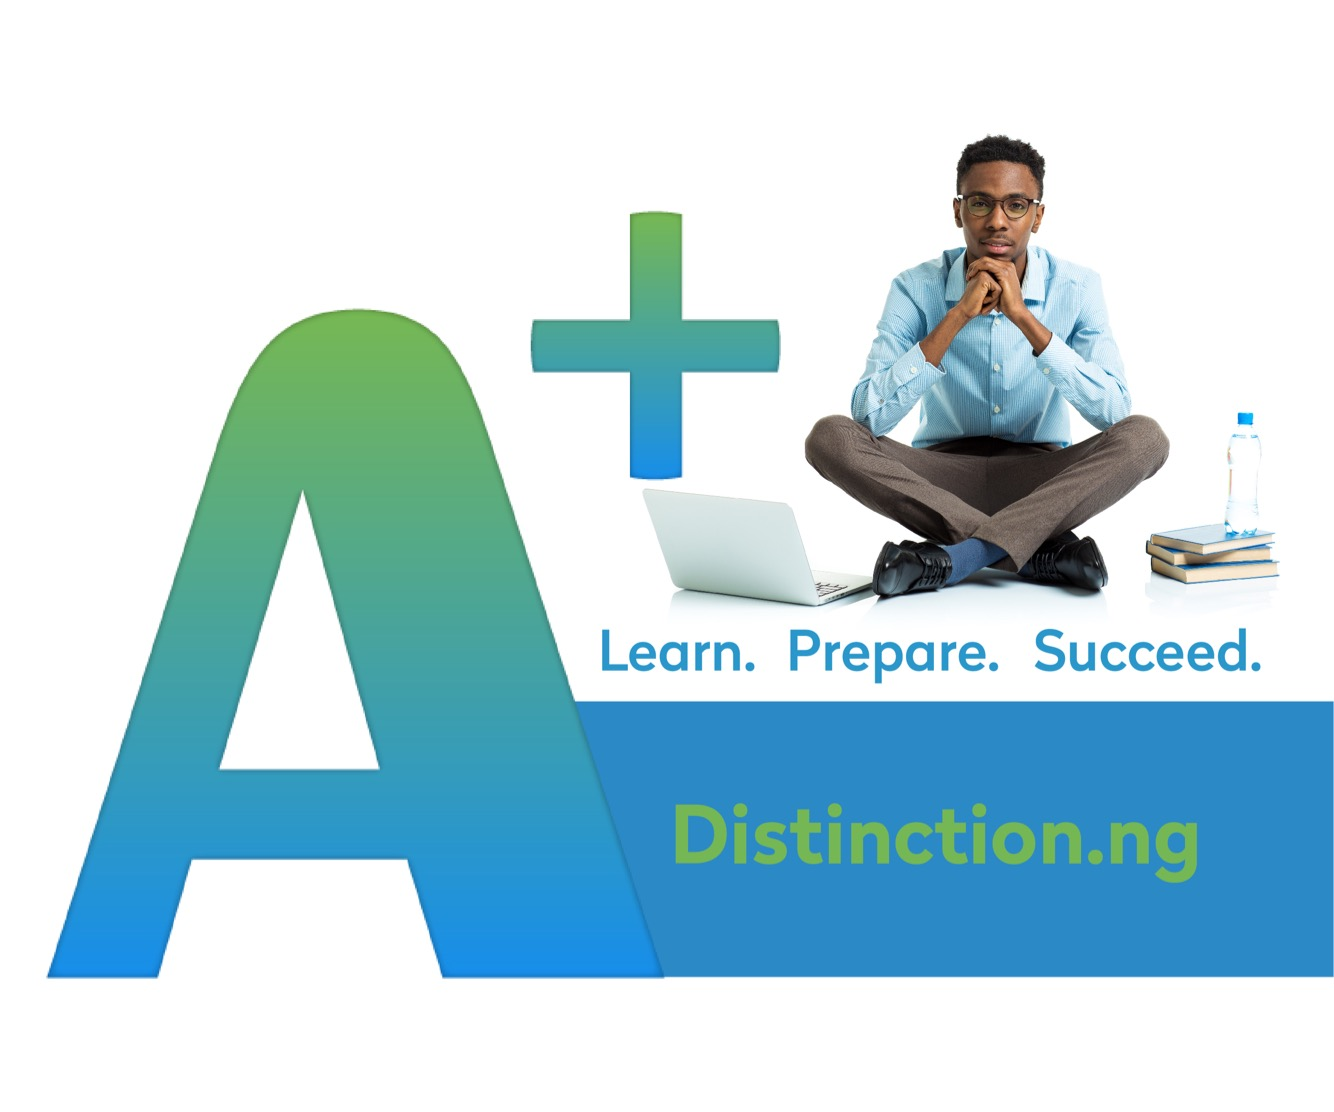 distinction.ng